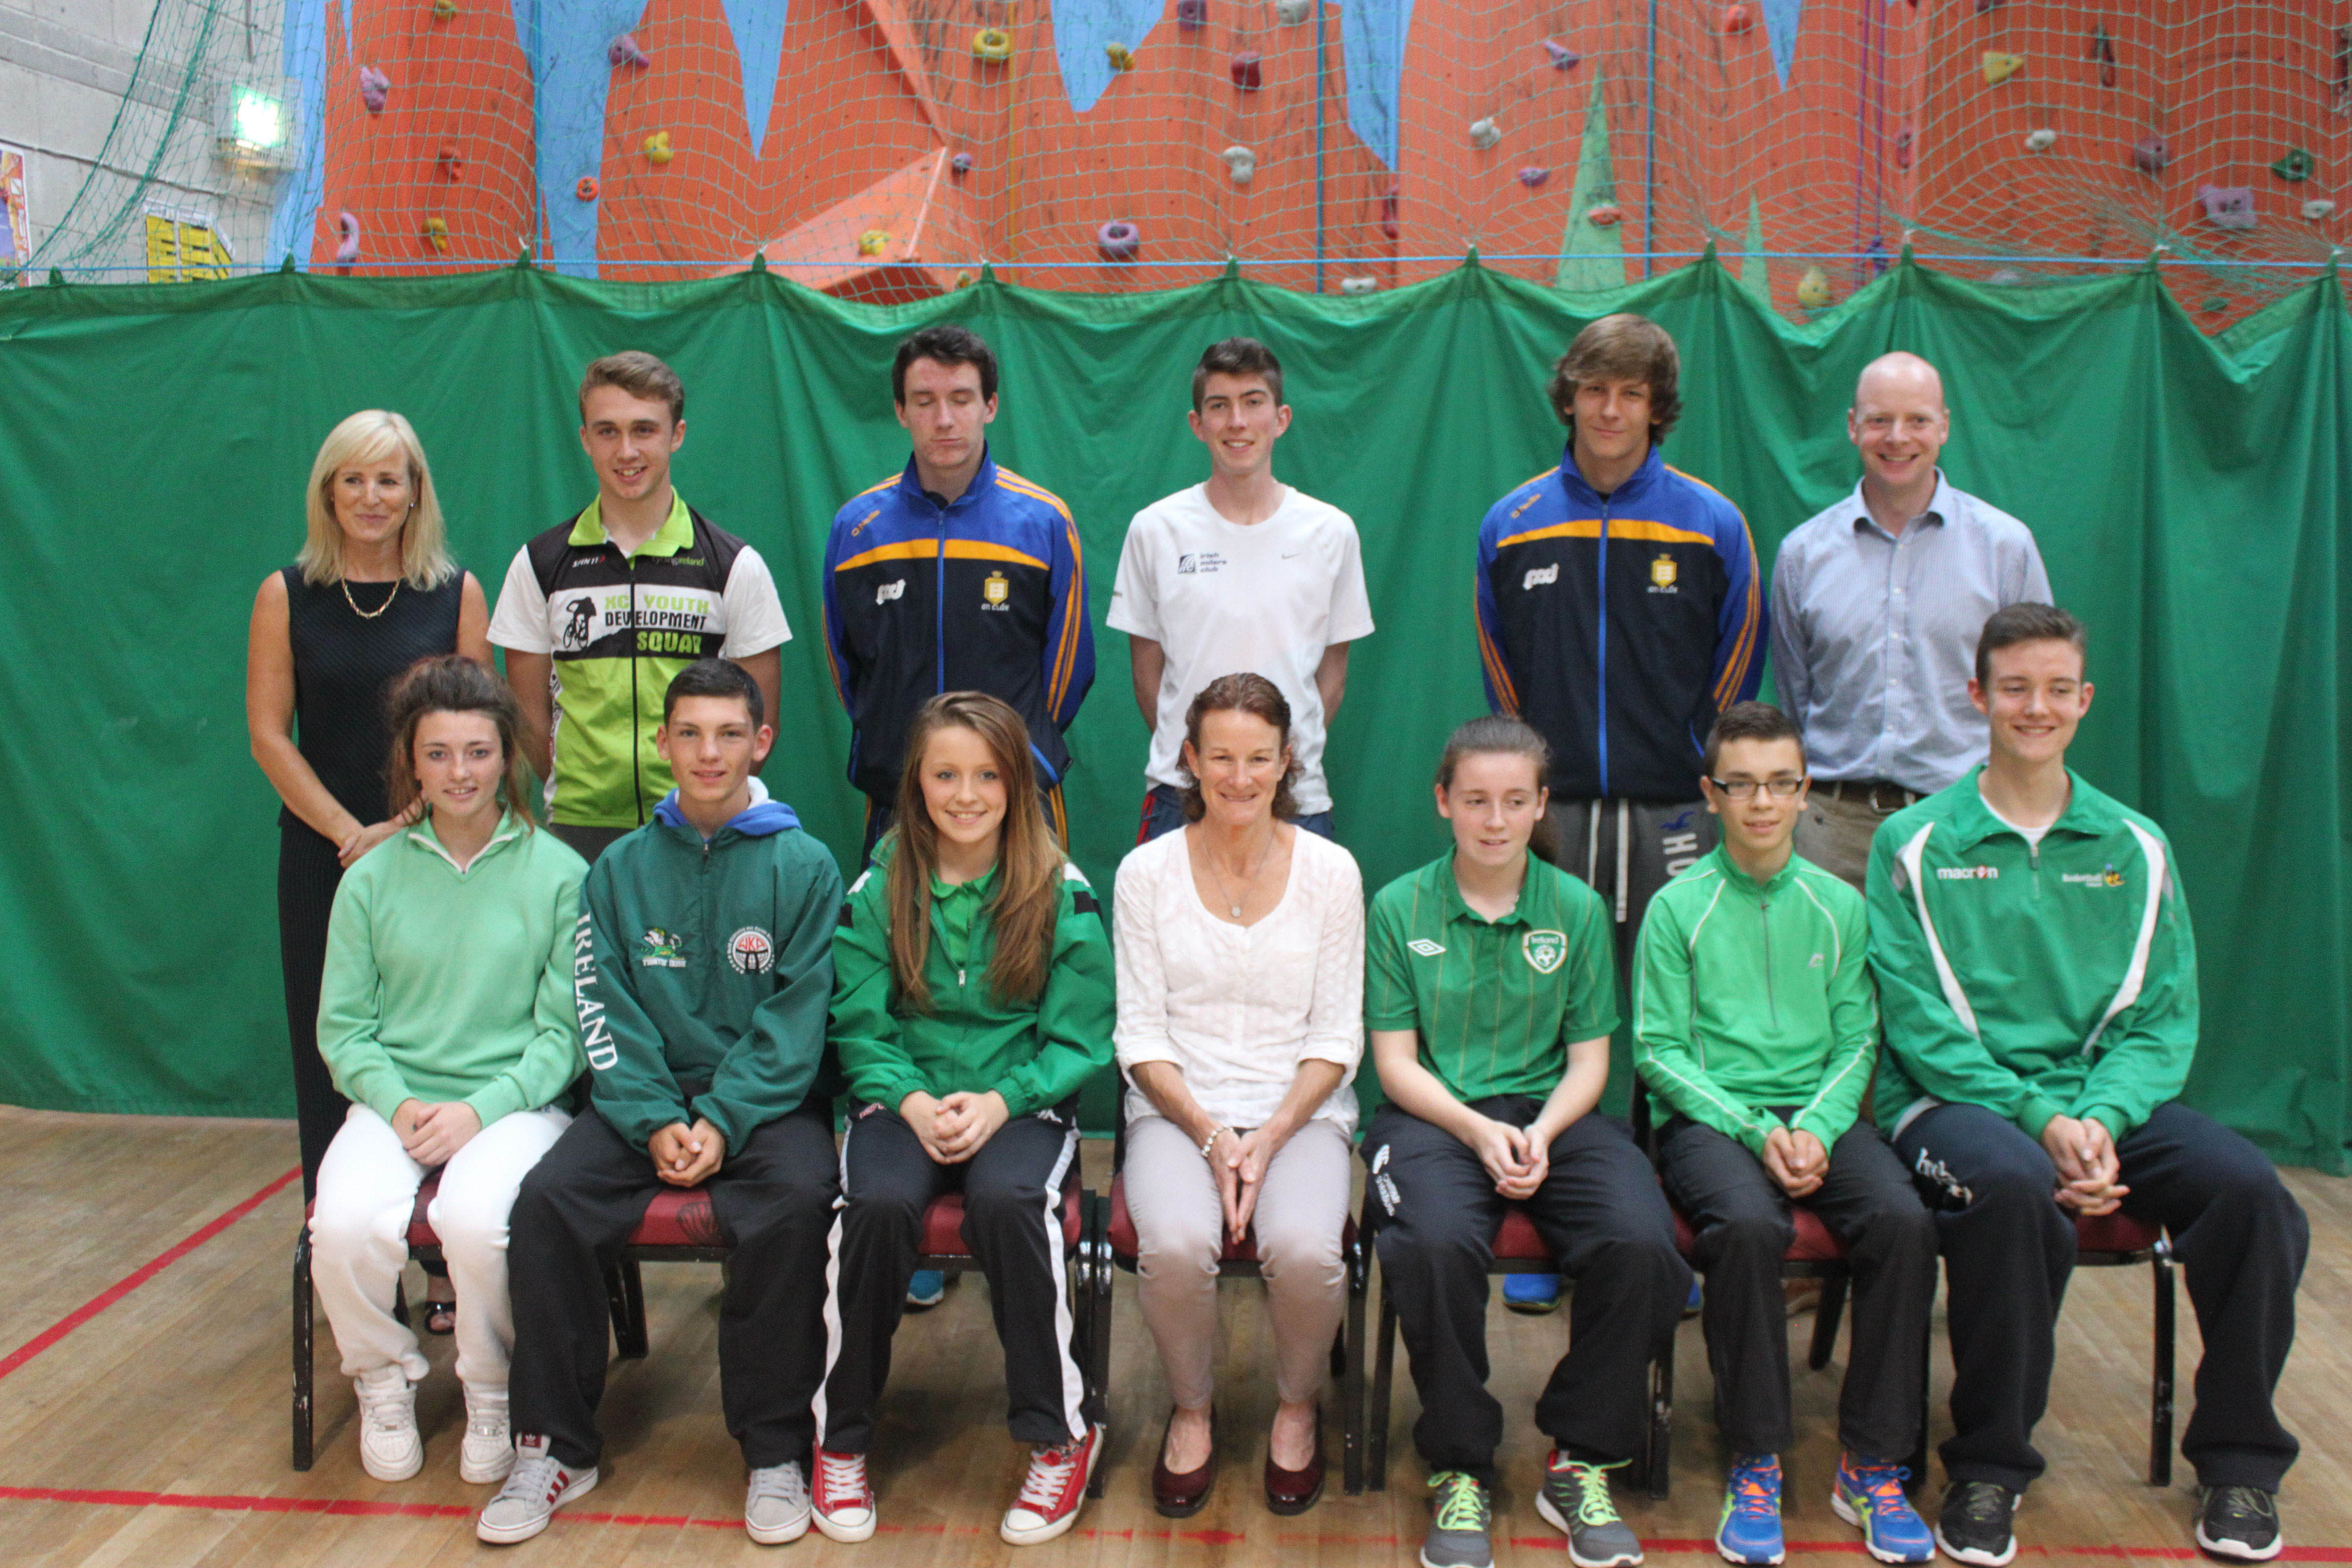 Pictured at the launch of the Shannon High Performance Academy (Back L-R): Eavan McCarthy,  (Shannon Swimming & Leisure Centre); James Hanrahan (Mountain Biking); Ben O Gorman (Hurling); Karl Fitzmaurice (Athletics); Aron Shanagher (Hurling); John Sweeney (Clare Sports Partnership). (Front l-r): Lisa O'Shea (Golf); Liam Alford (Kickboxing);Joanne Potter (Taekwan-Do); Sonia O'Sullivan; Sabrina McCarthy (Soccer); Gearoid McMahon (Athletics); and Tommy Walsh (Basketball).